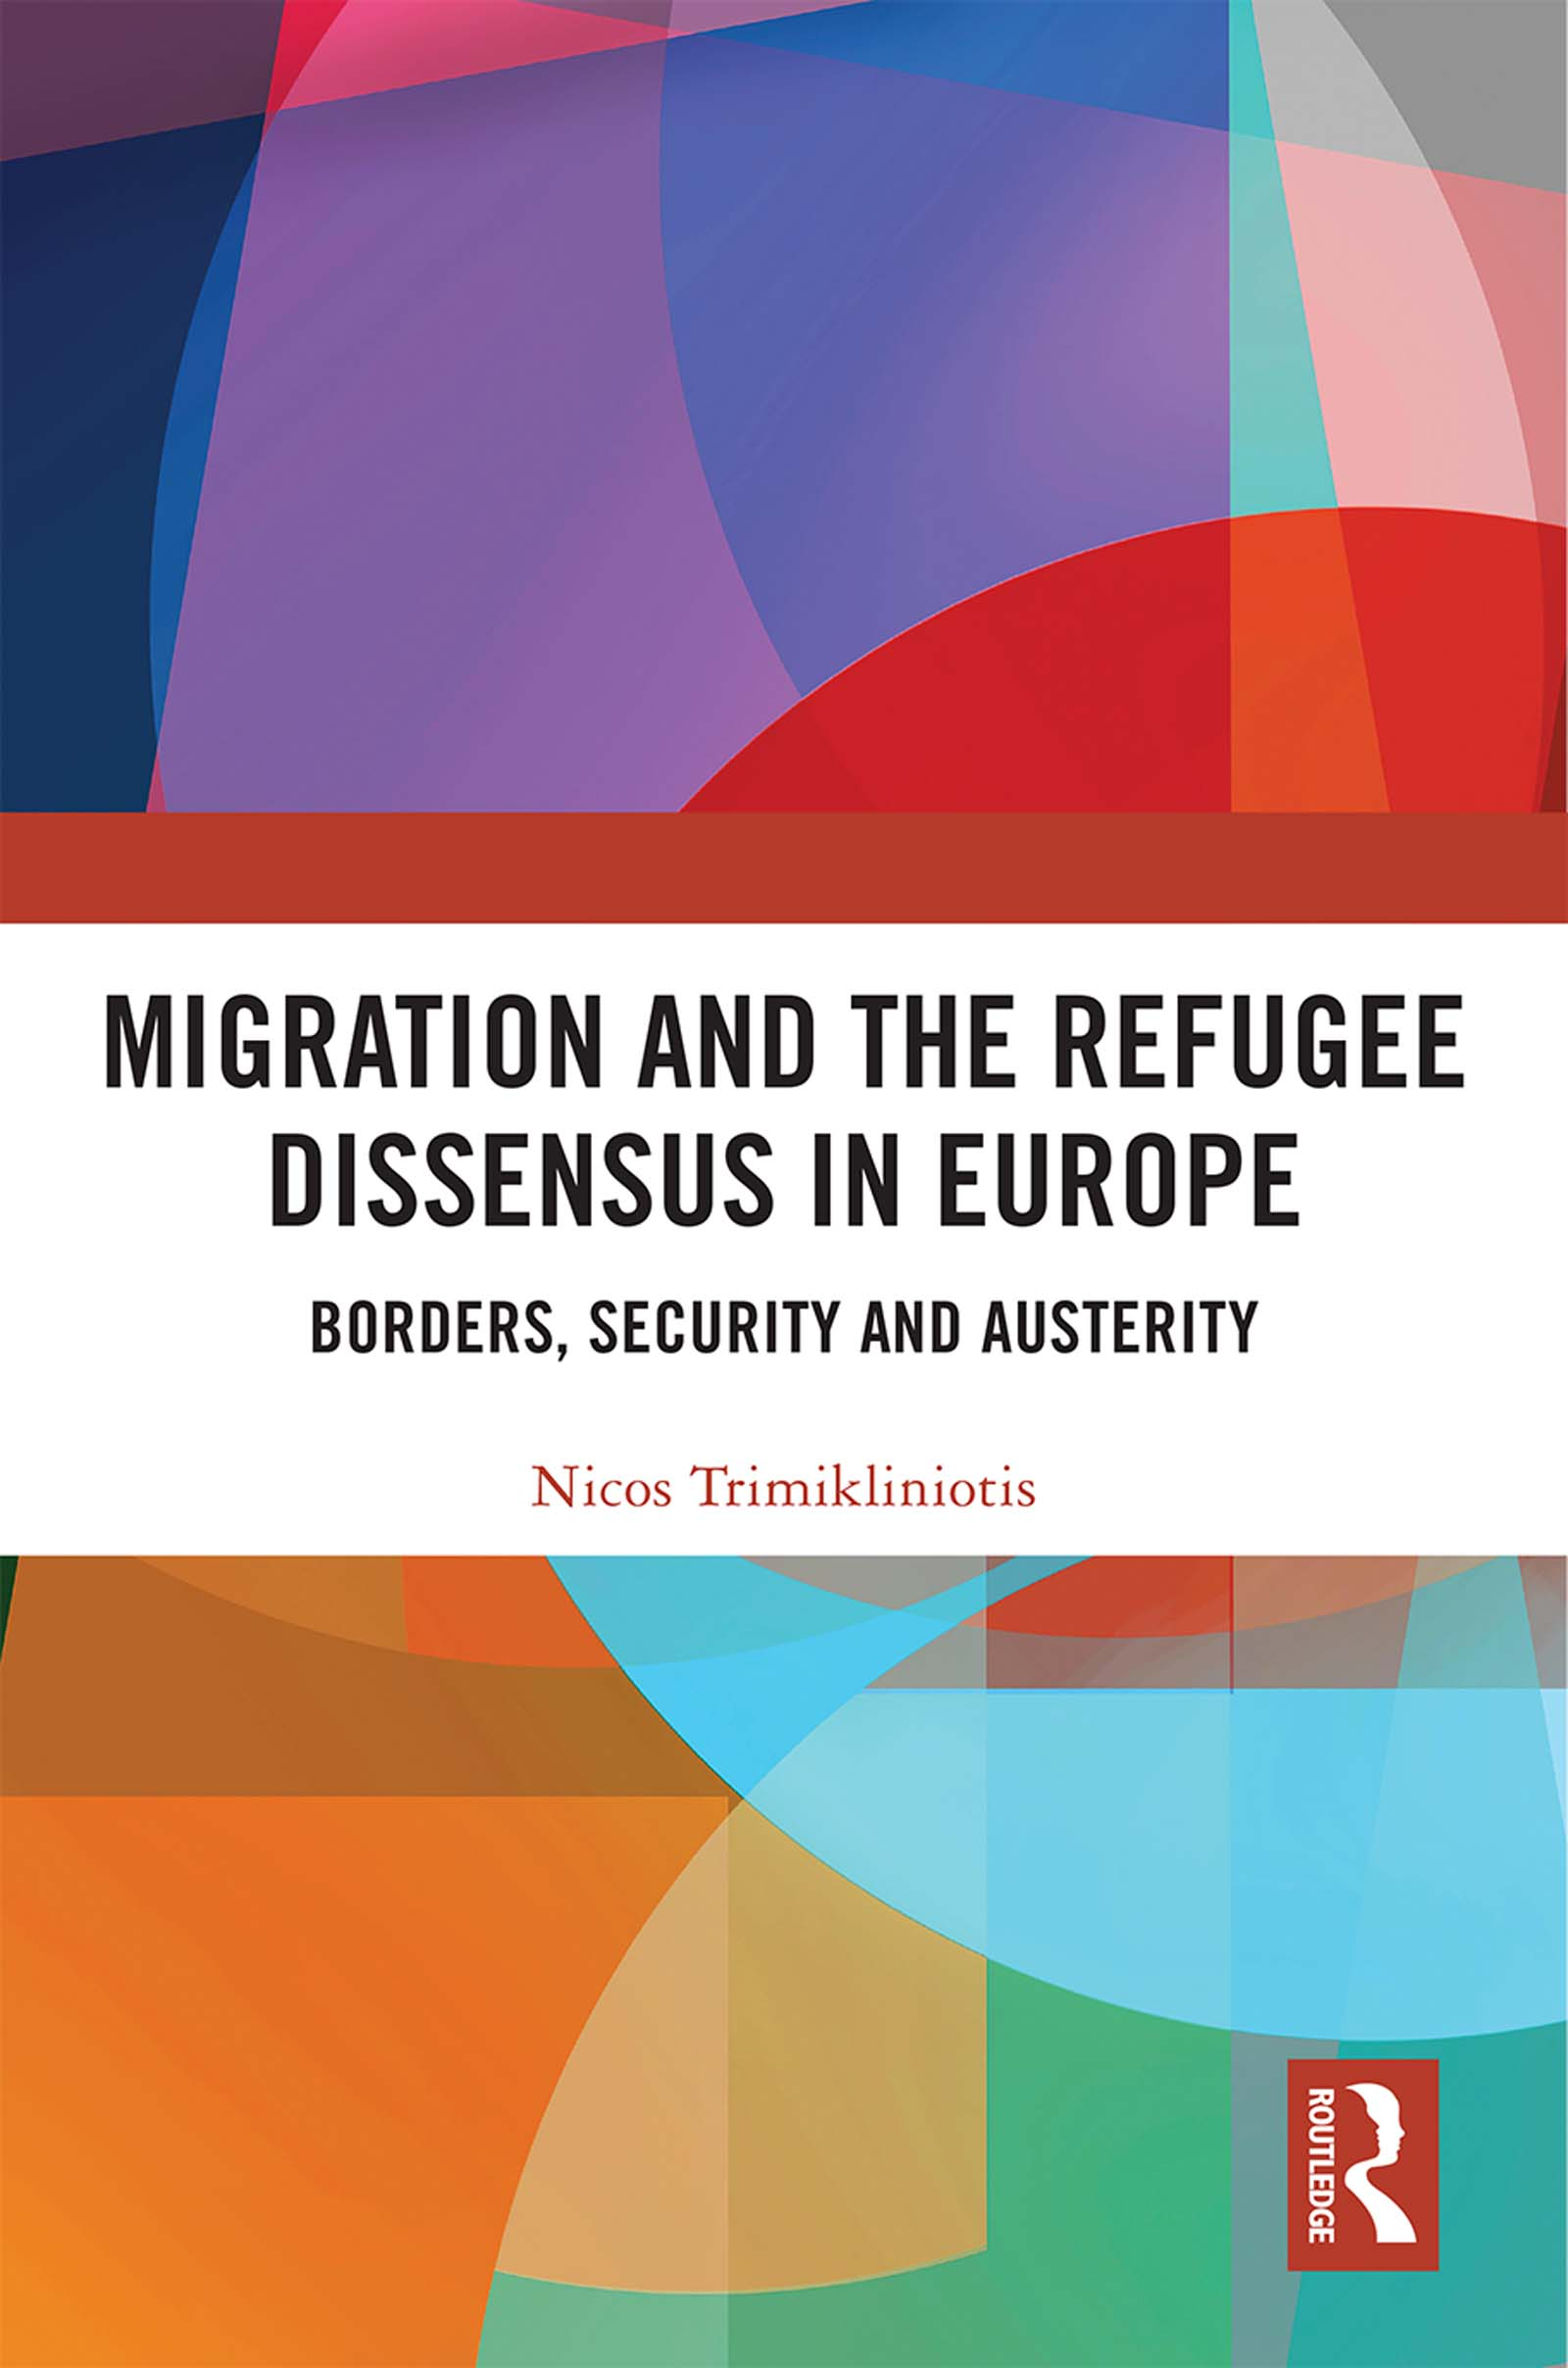 Migration and the Refugee Dissensus in Europe: Borders, Security and Austerity book cover